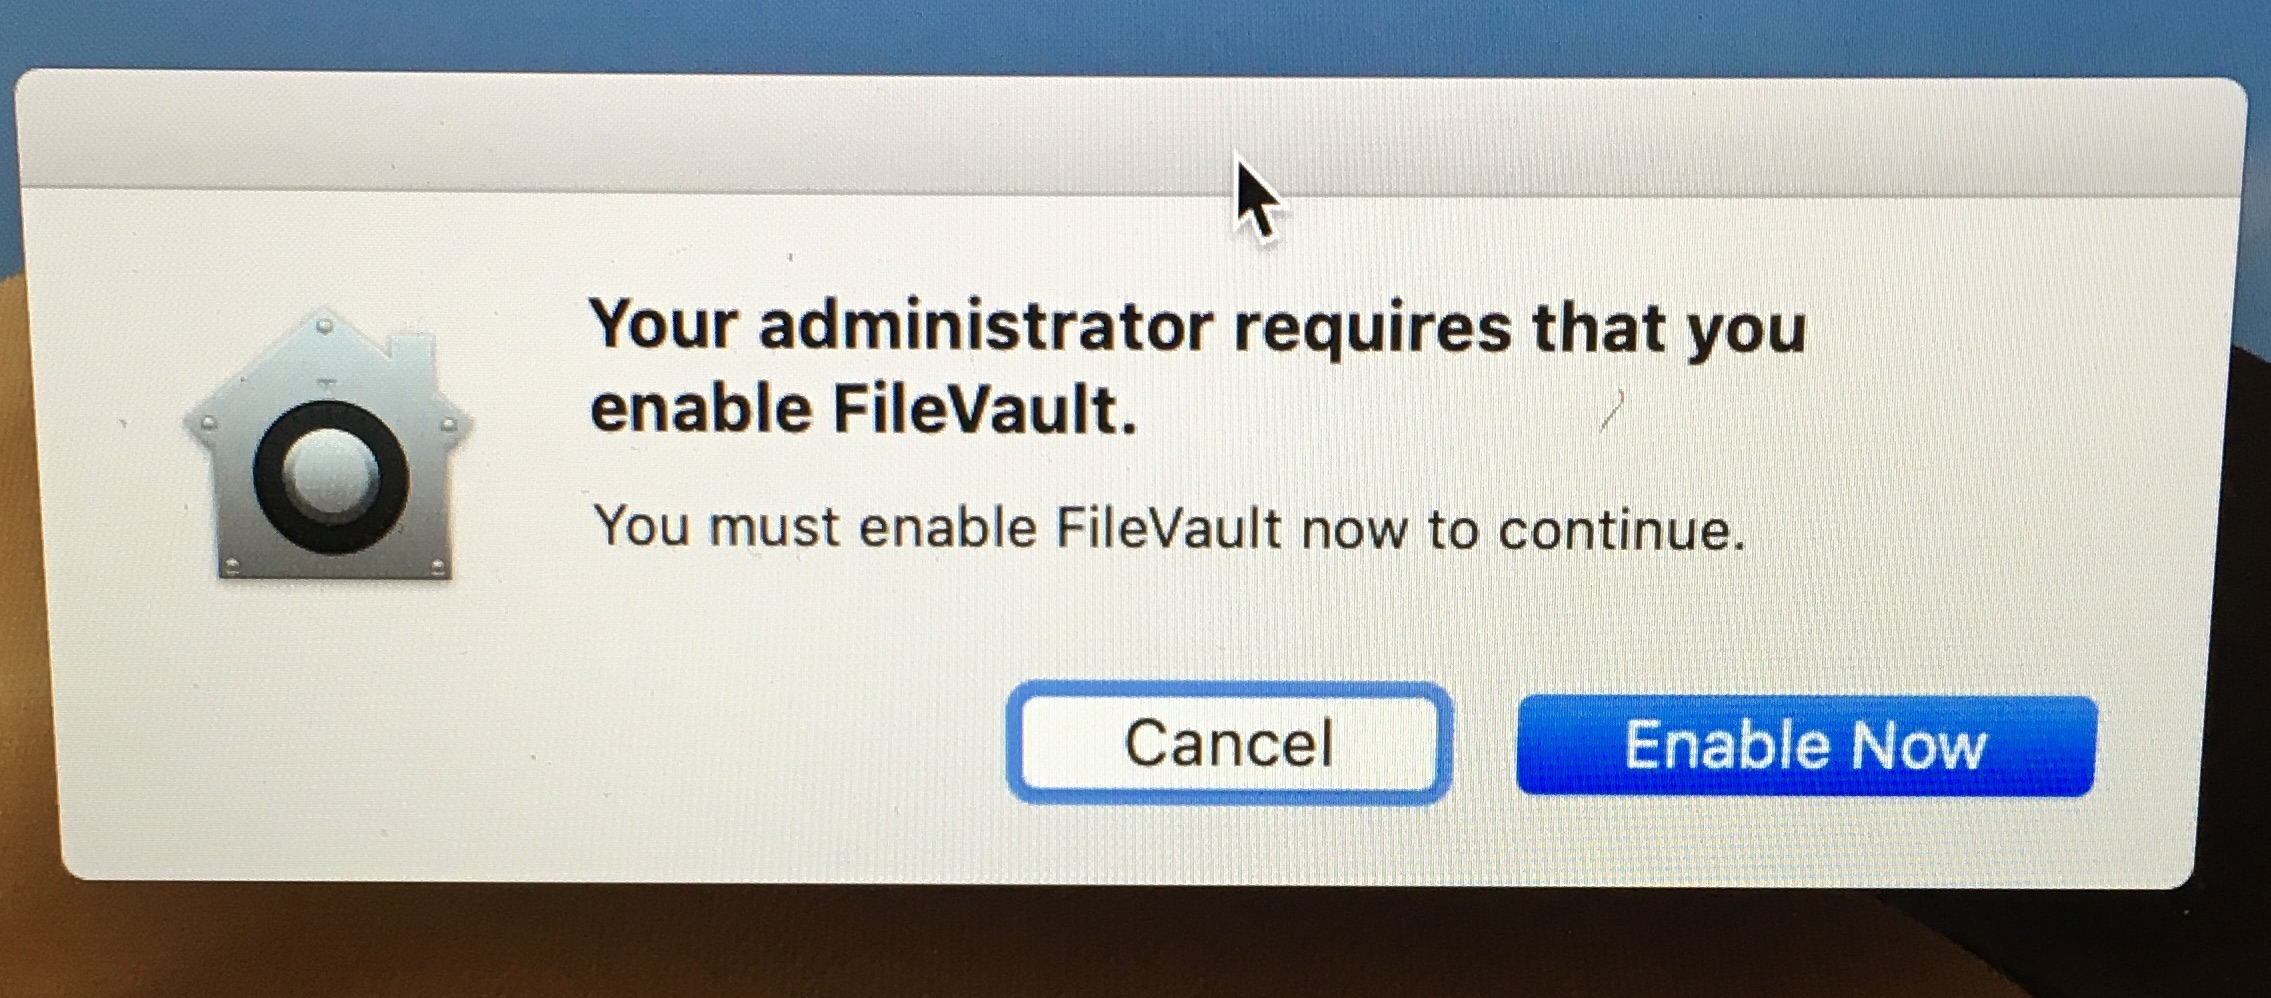 Your administrator requires that you enable FileVault.